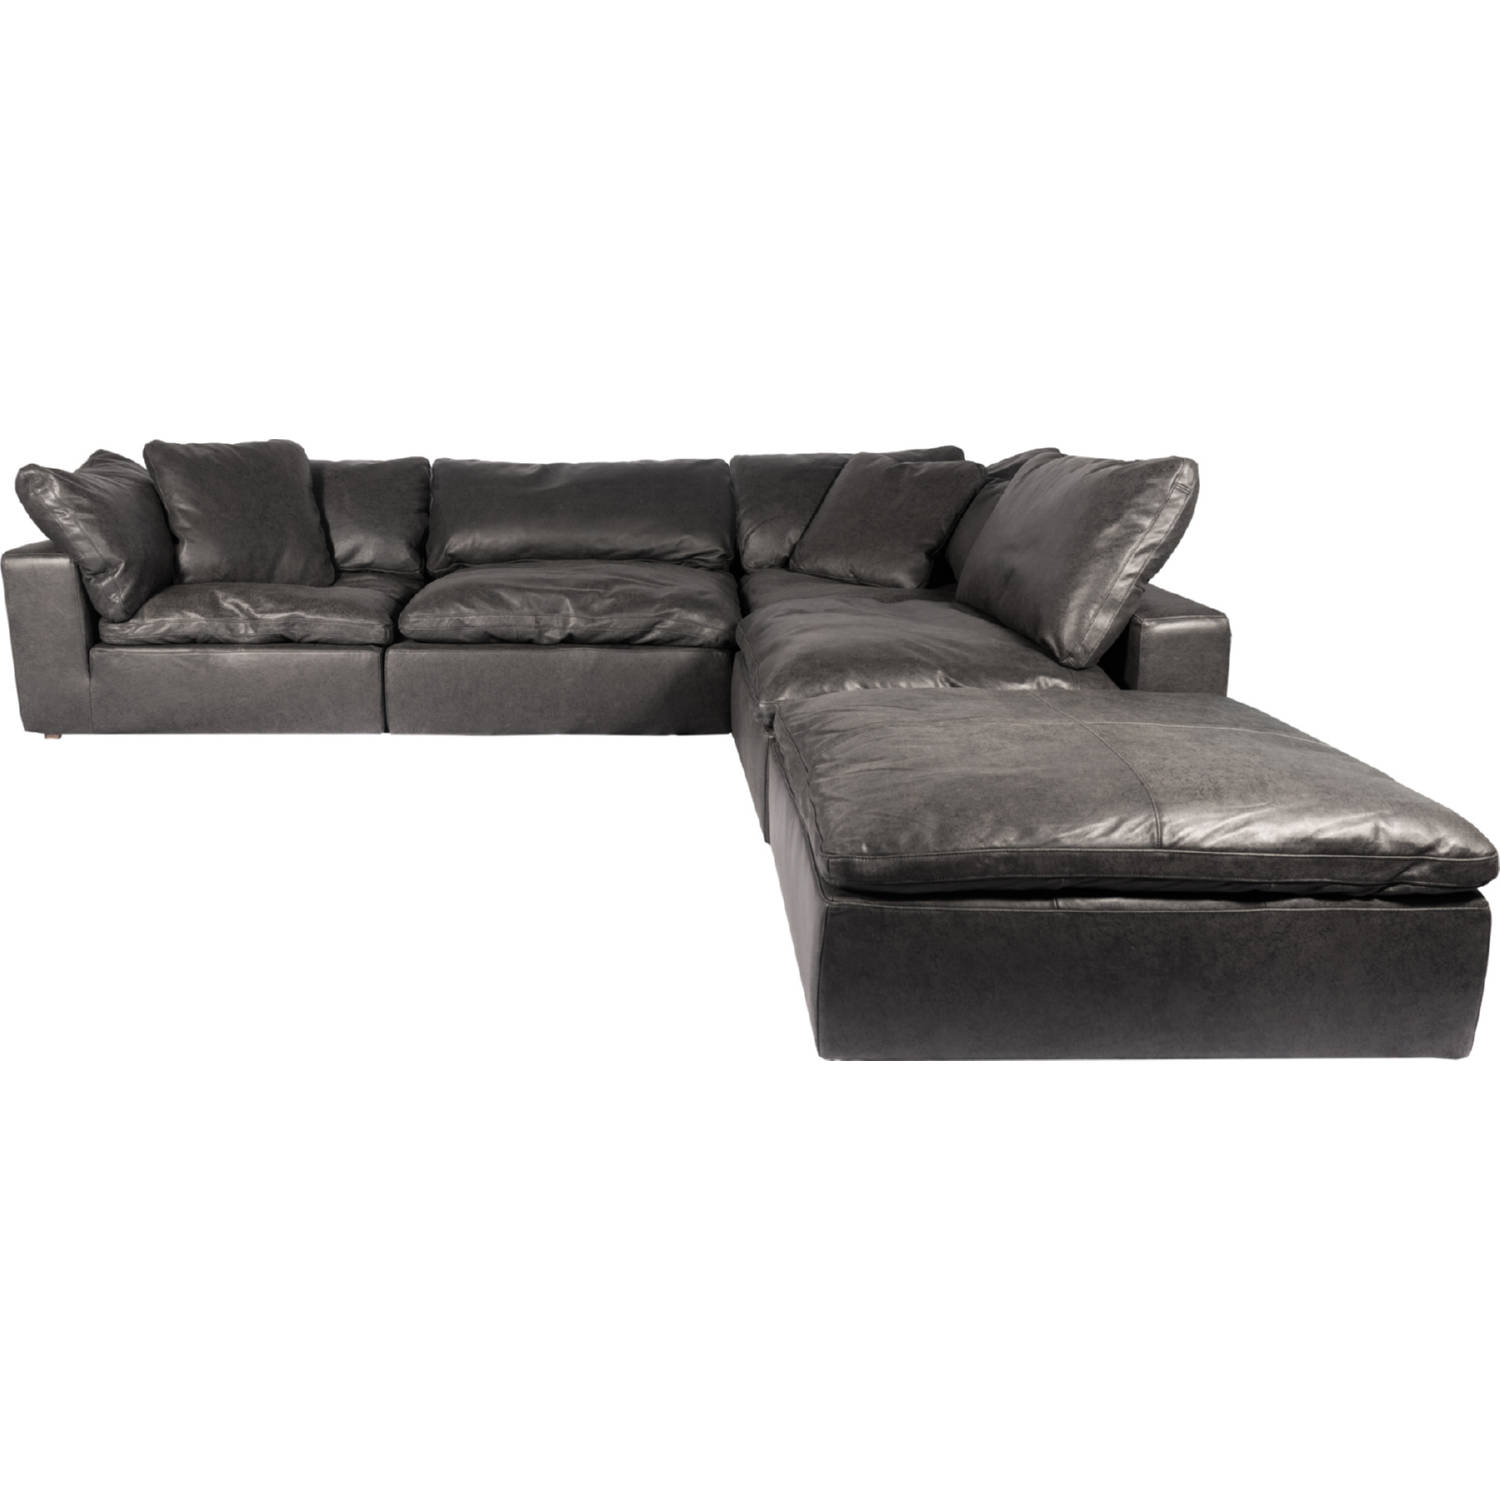 Clay Dream Modular Sectional Sofa in Black Top Grain Leather by Moe\'s Home  Collection